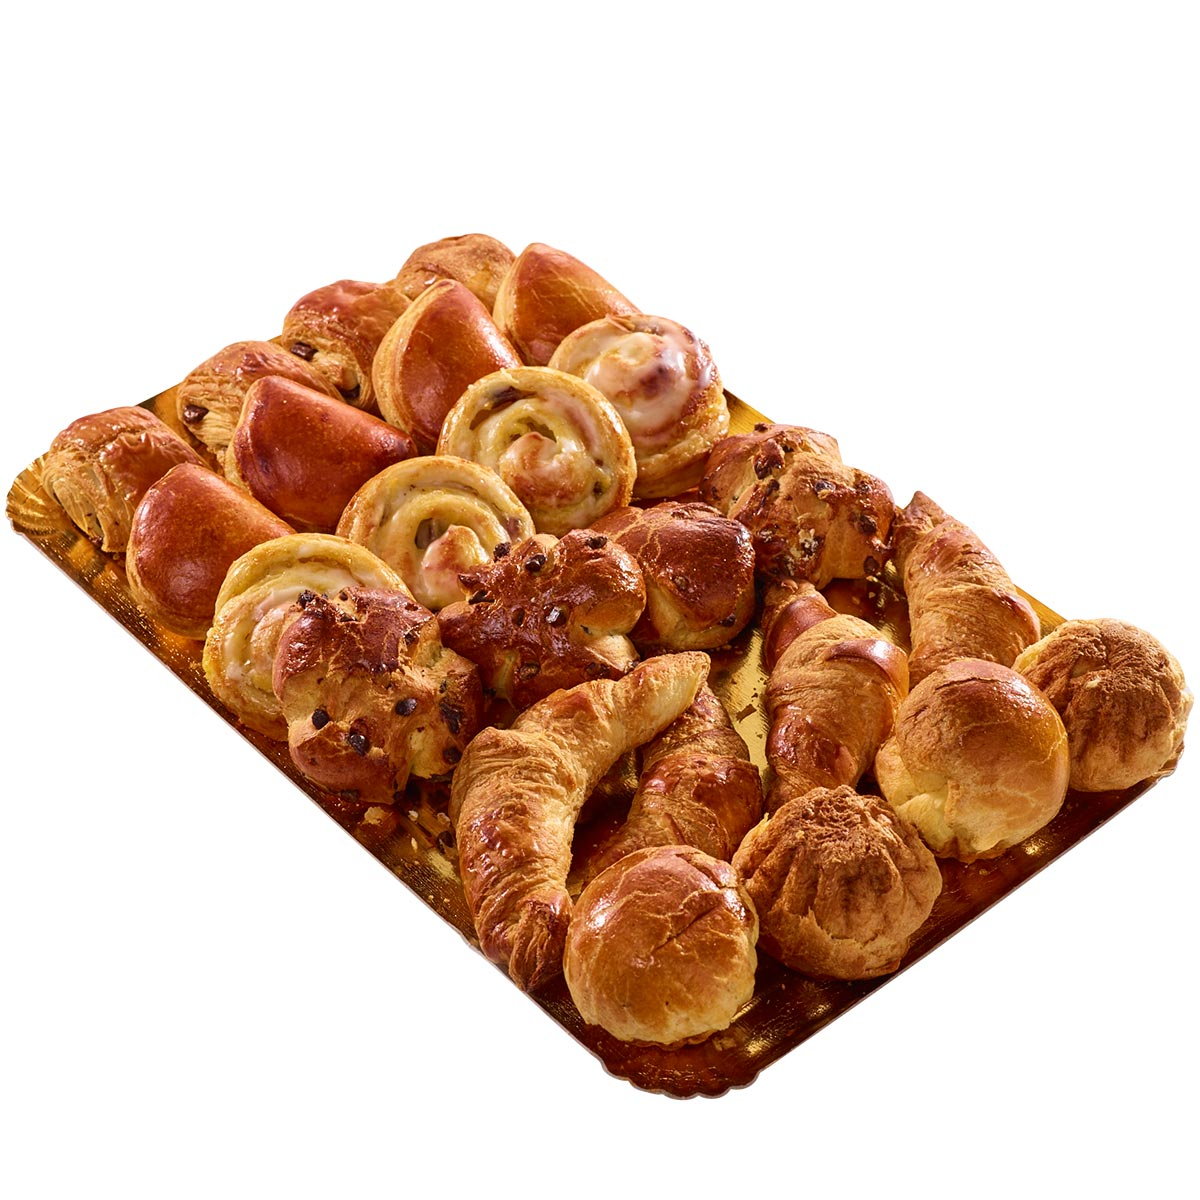 Assortiment de mini viennoiseries